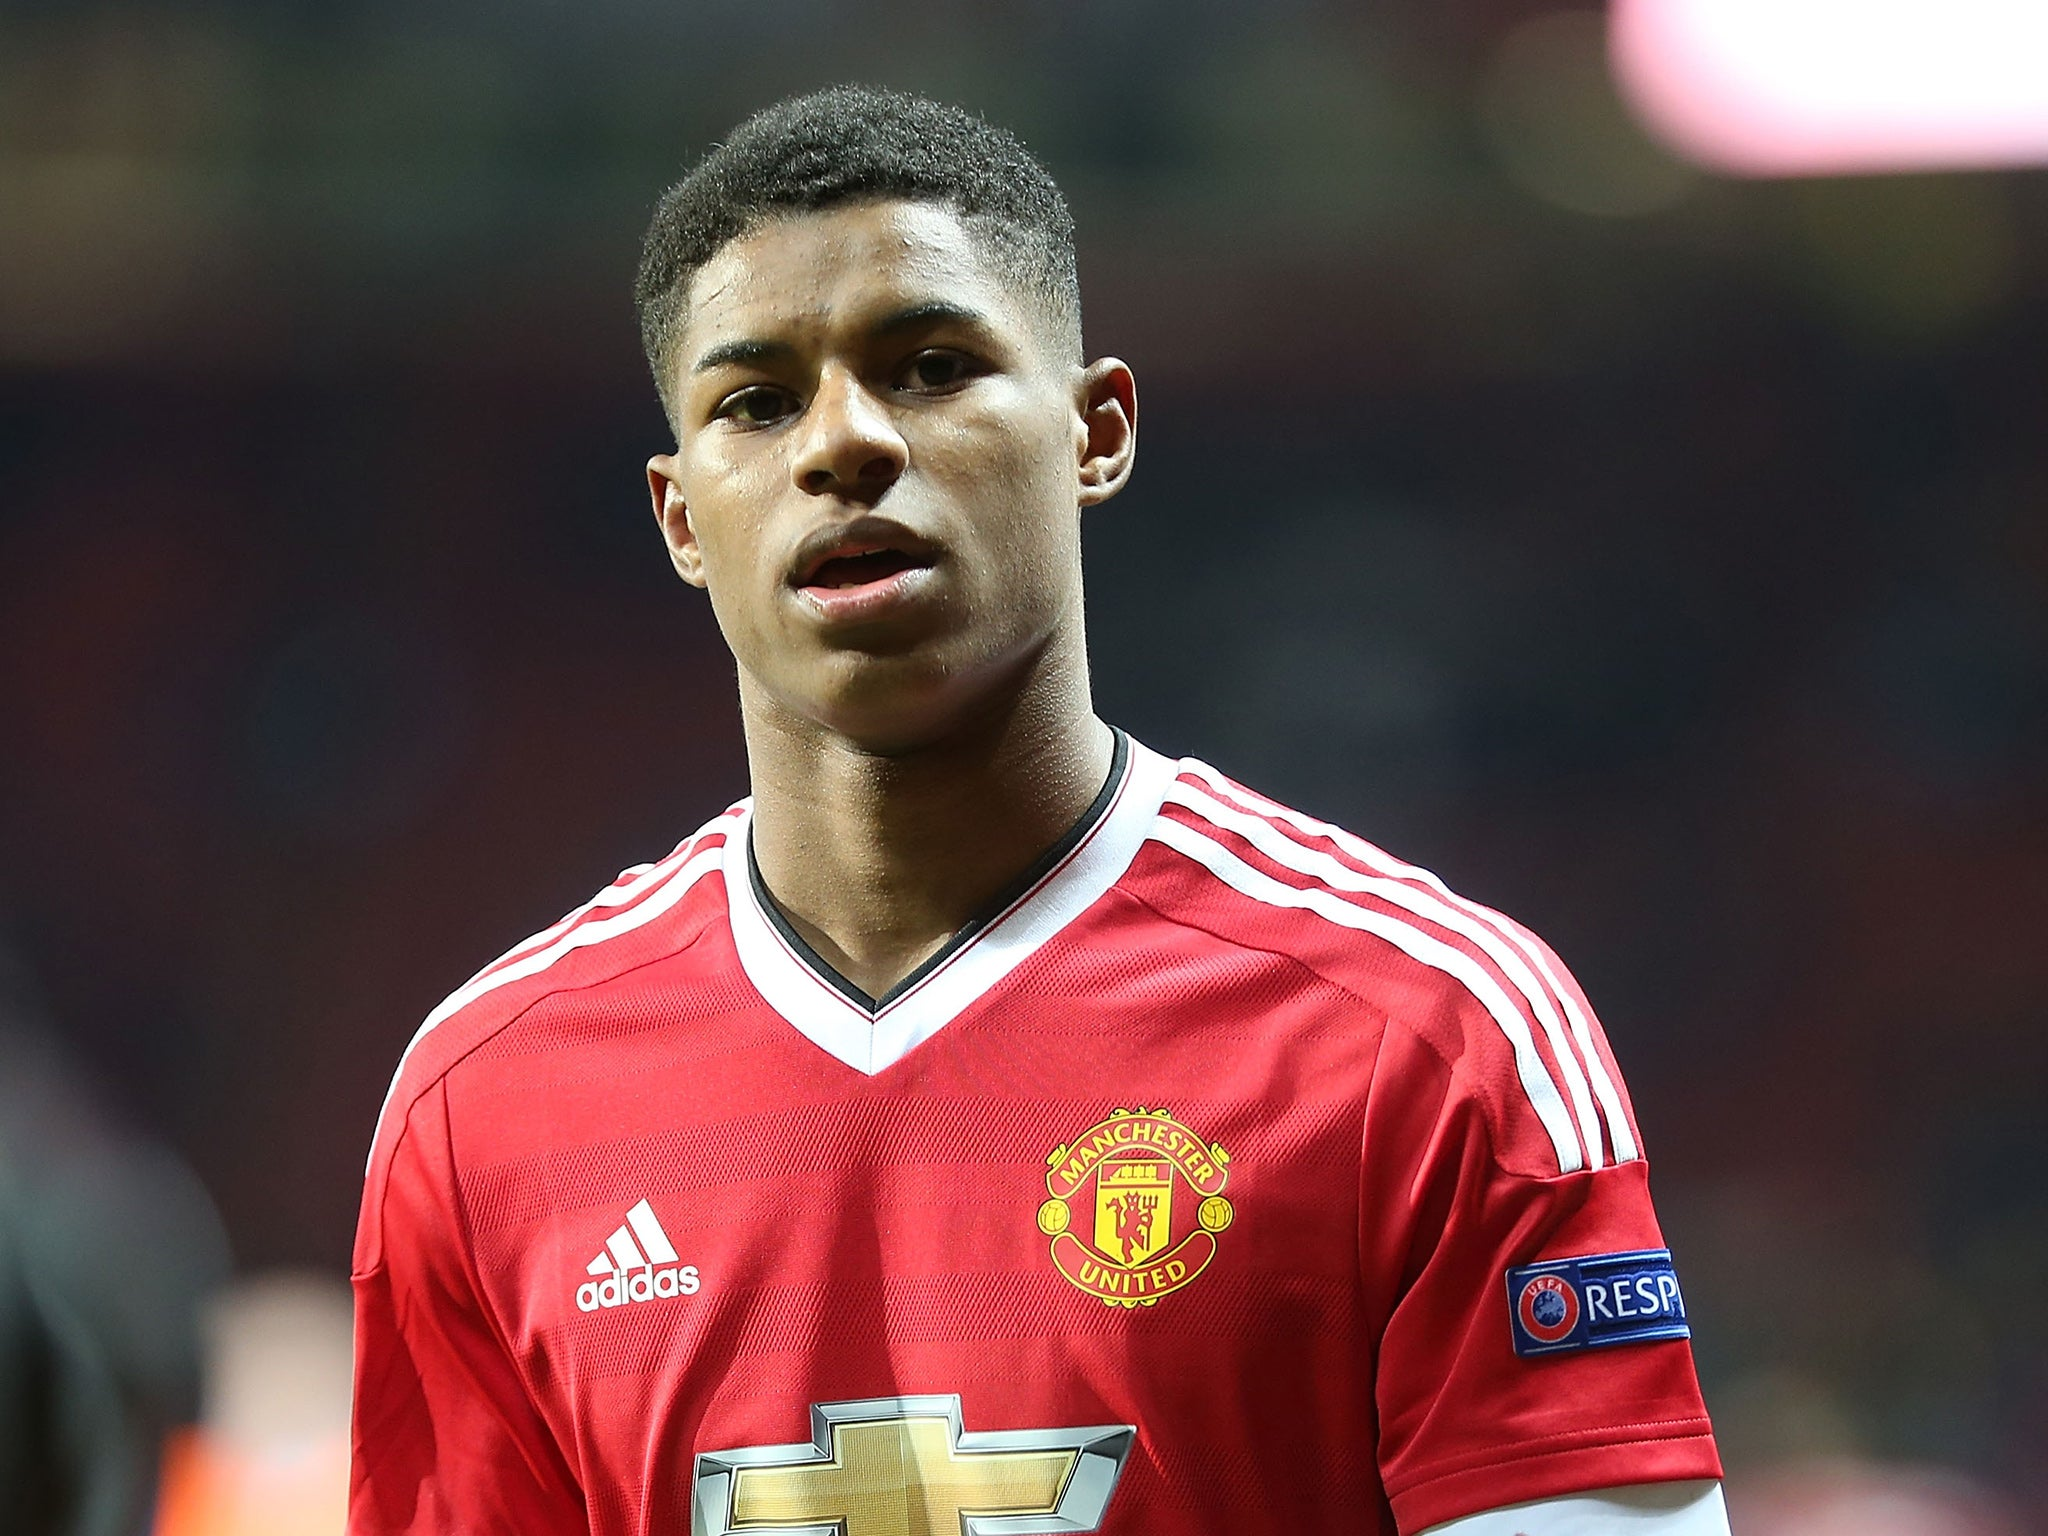 Marcus Rashford: Manchester City Rejected Manchester